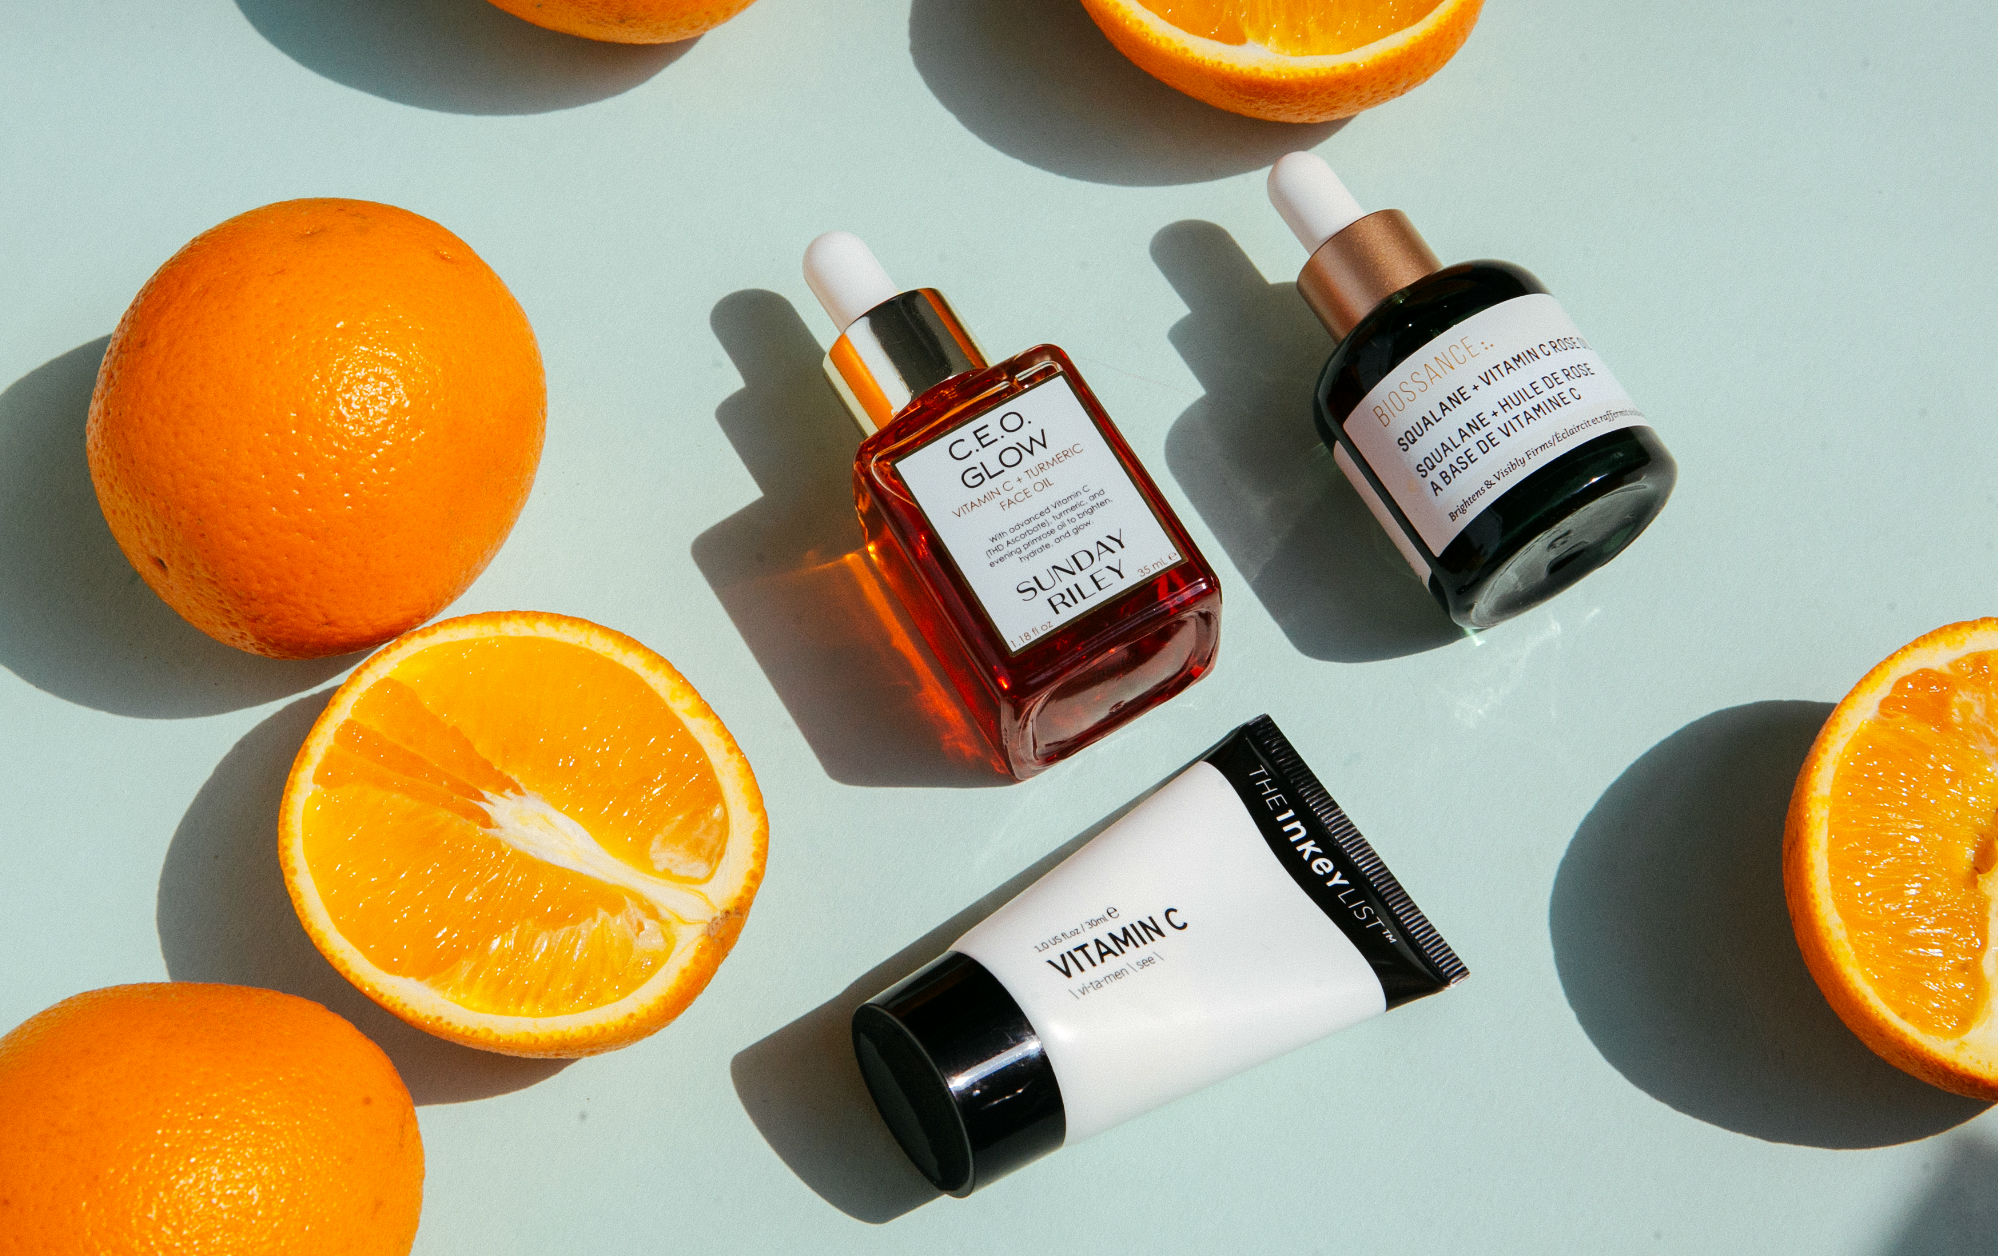 The Best Beauty Buys From Sephora: Vitamin C Edition